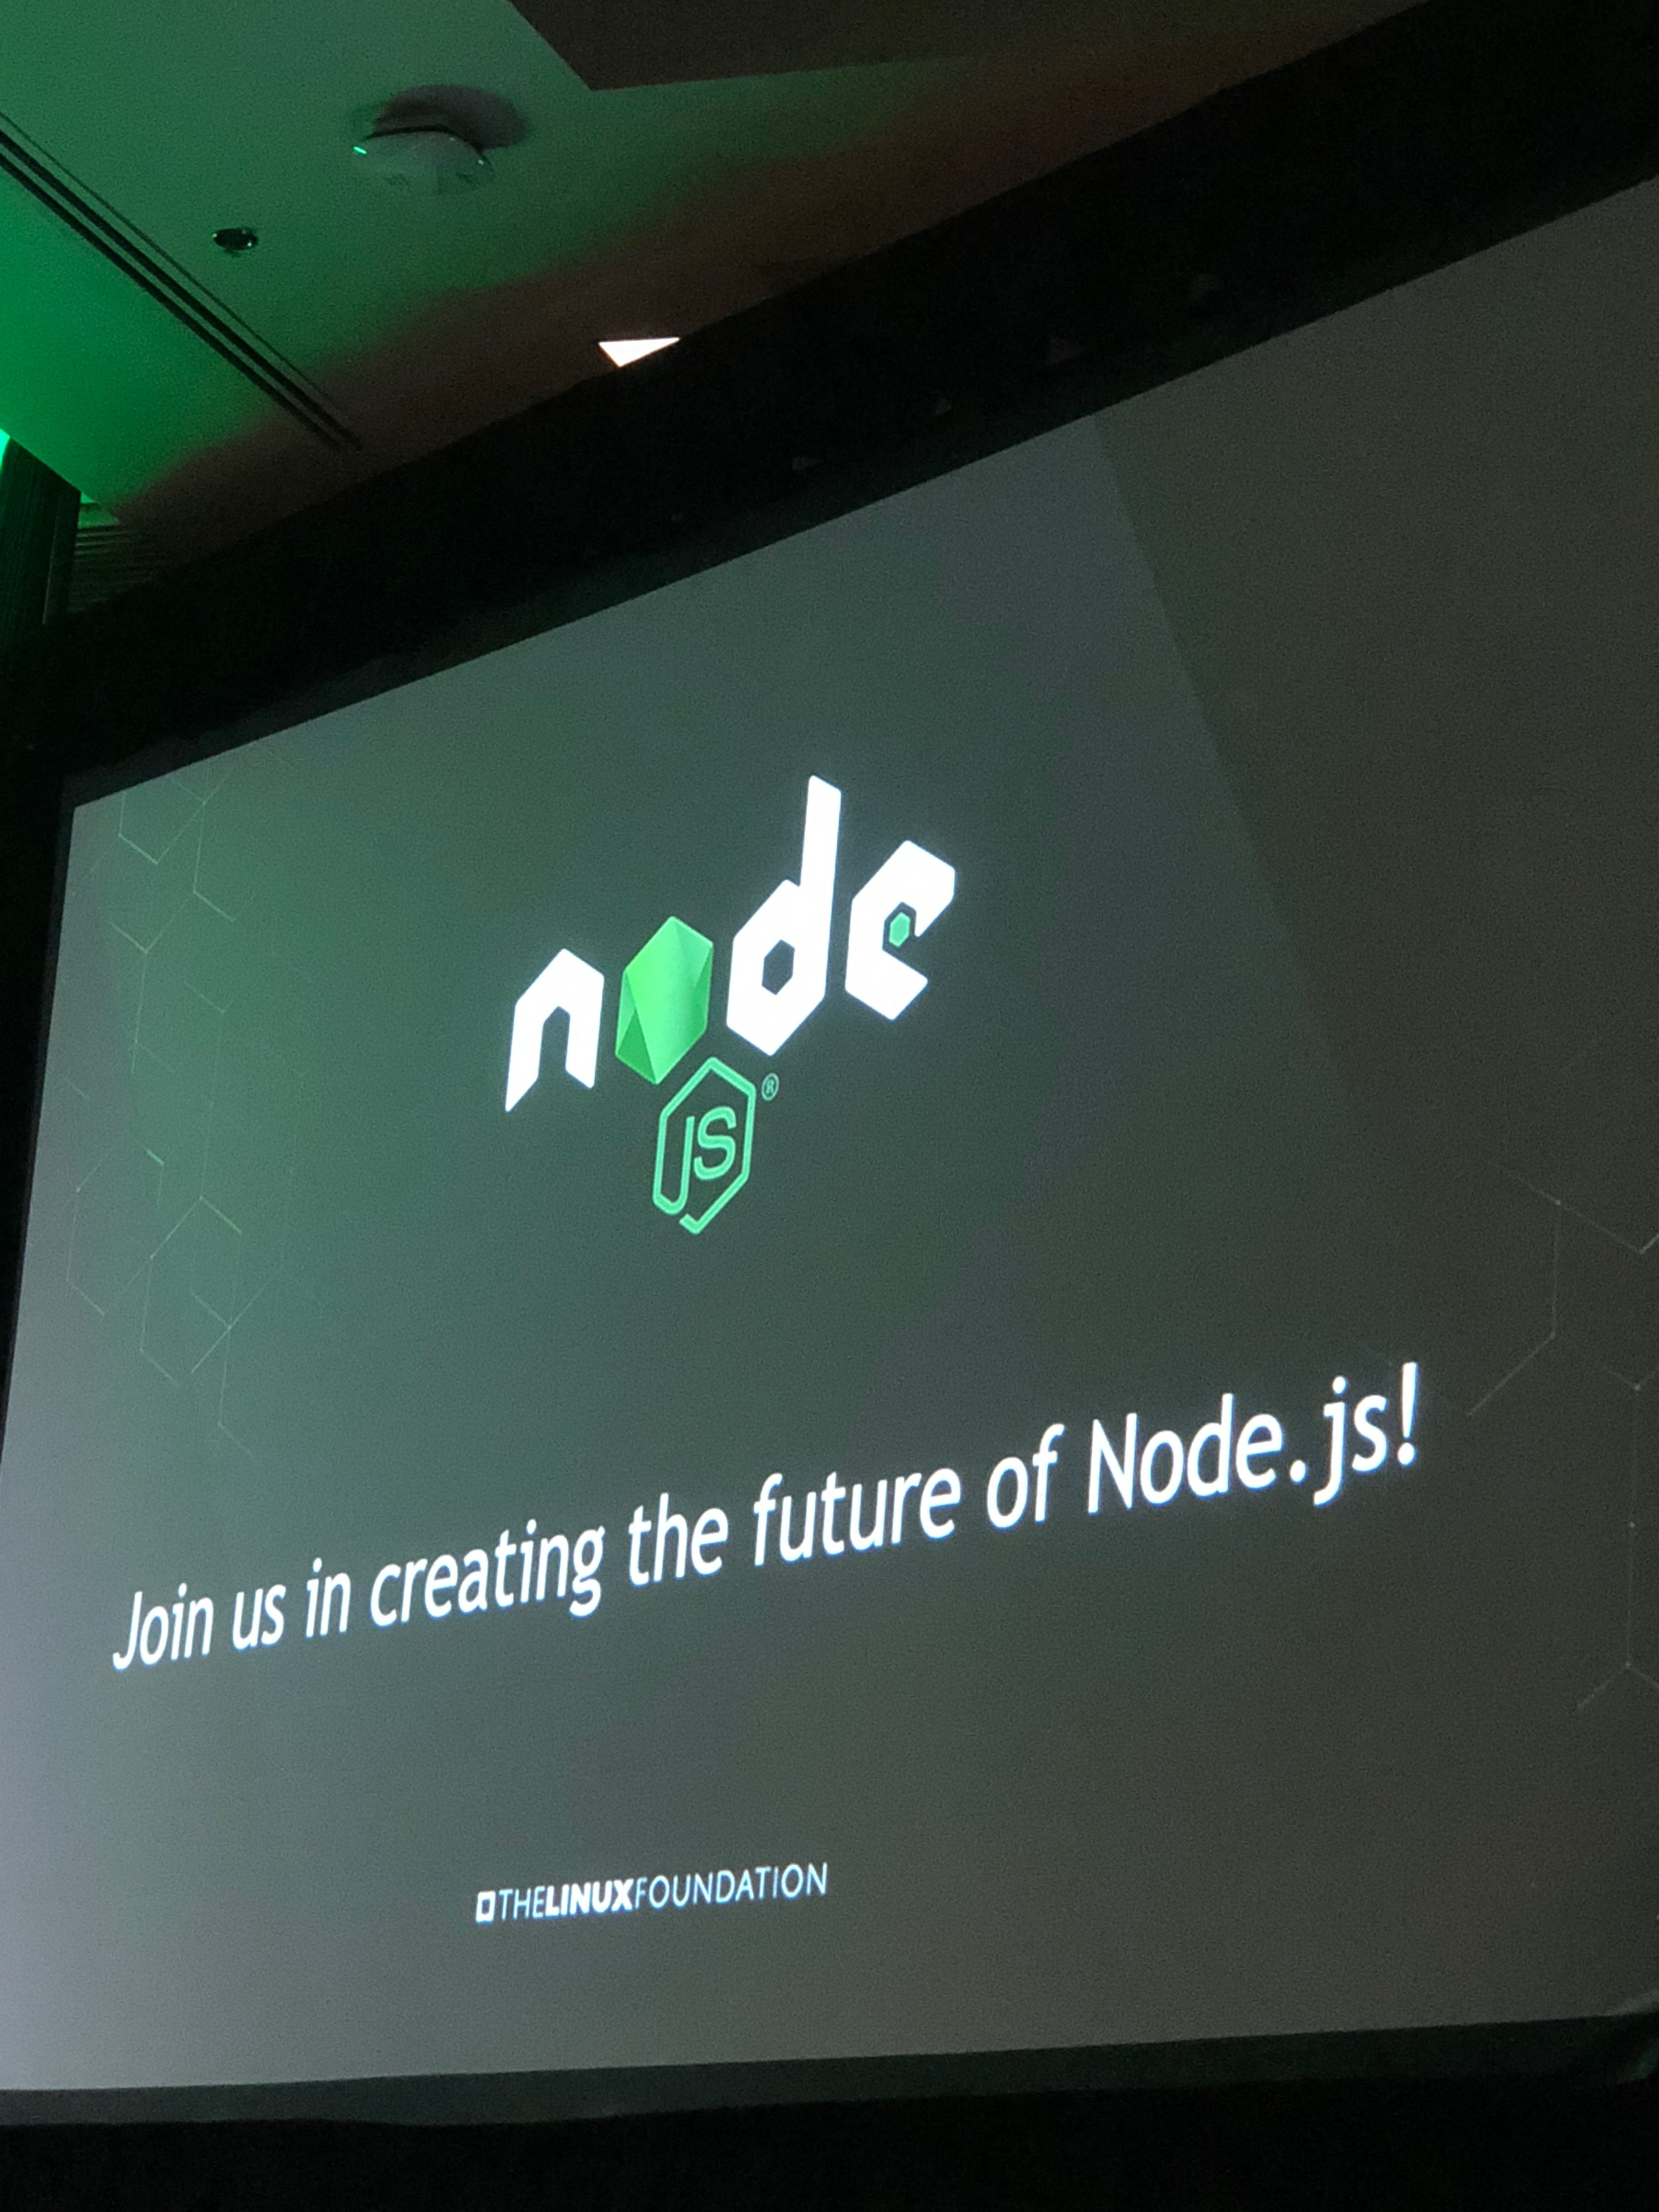 Node.js: Join us in creating the future of Node.js!